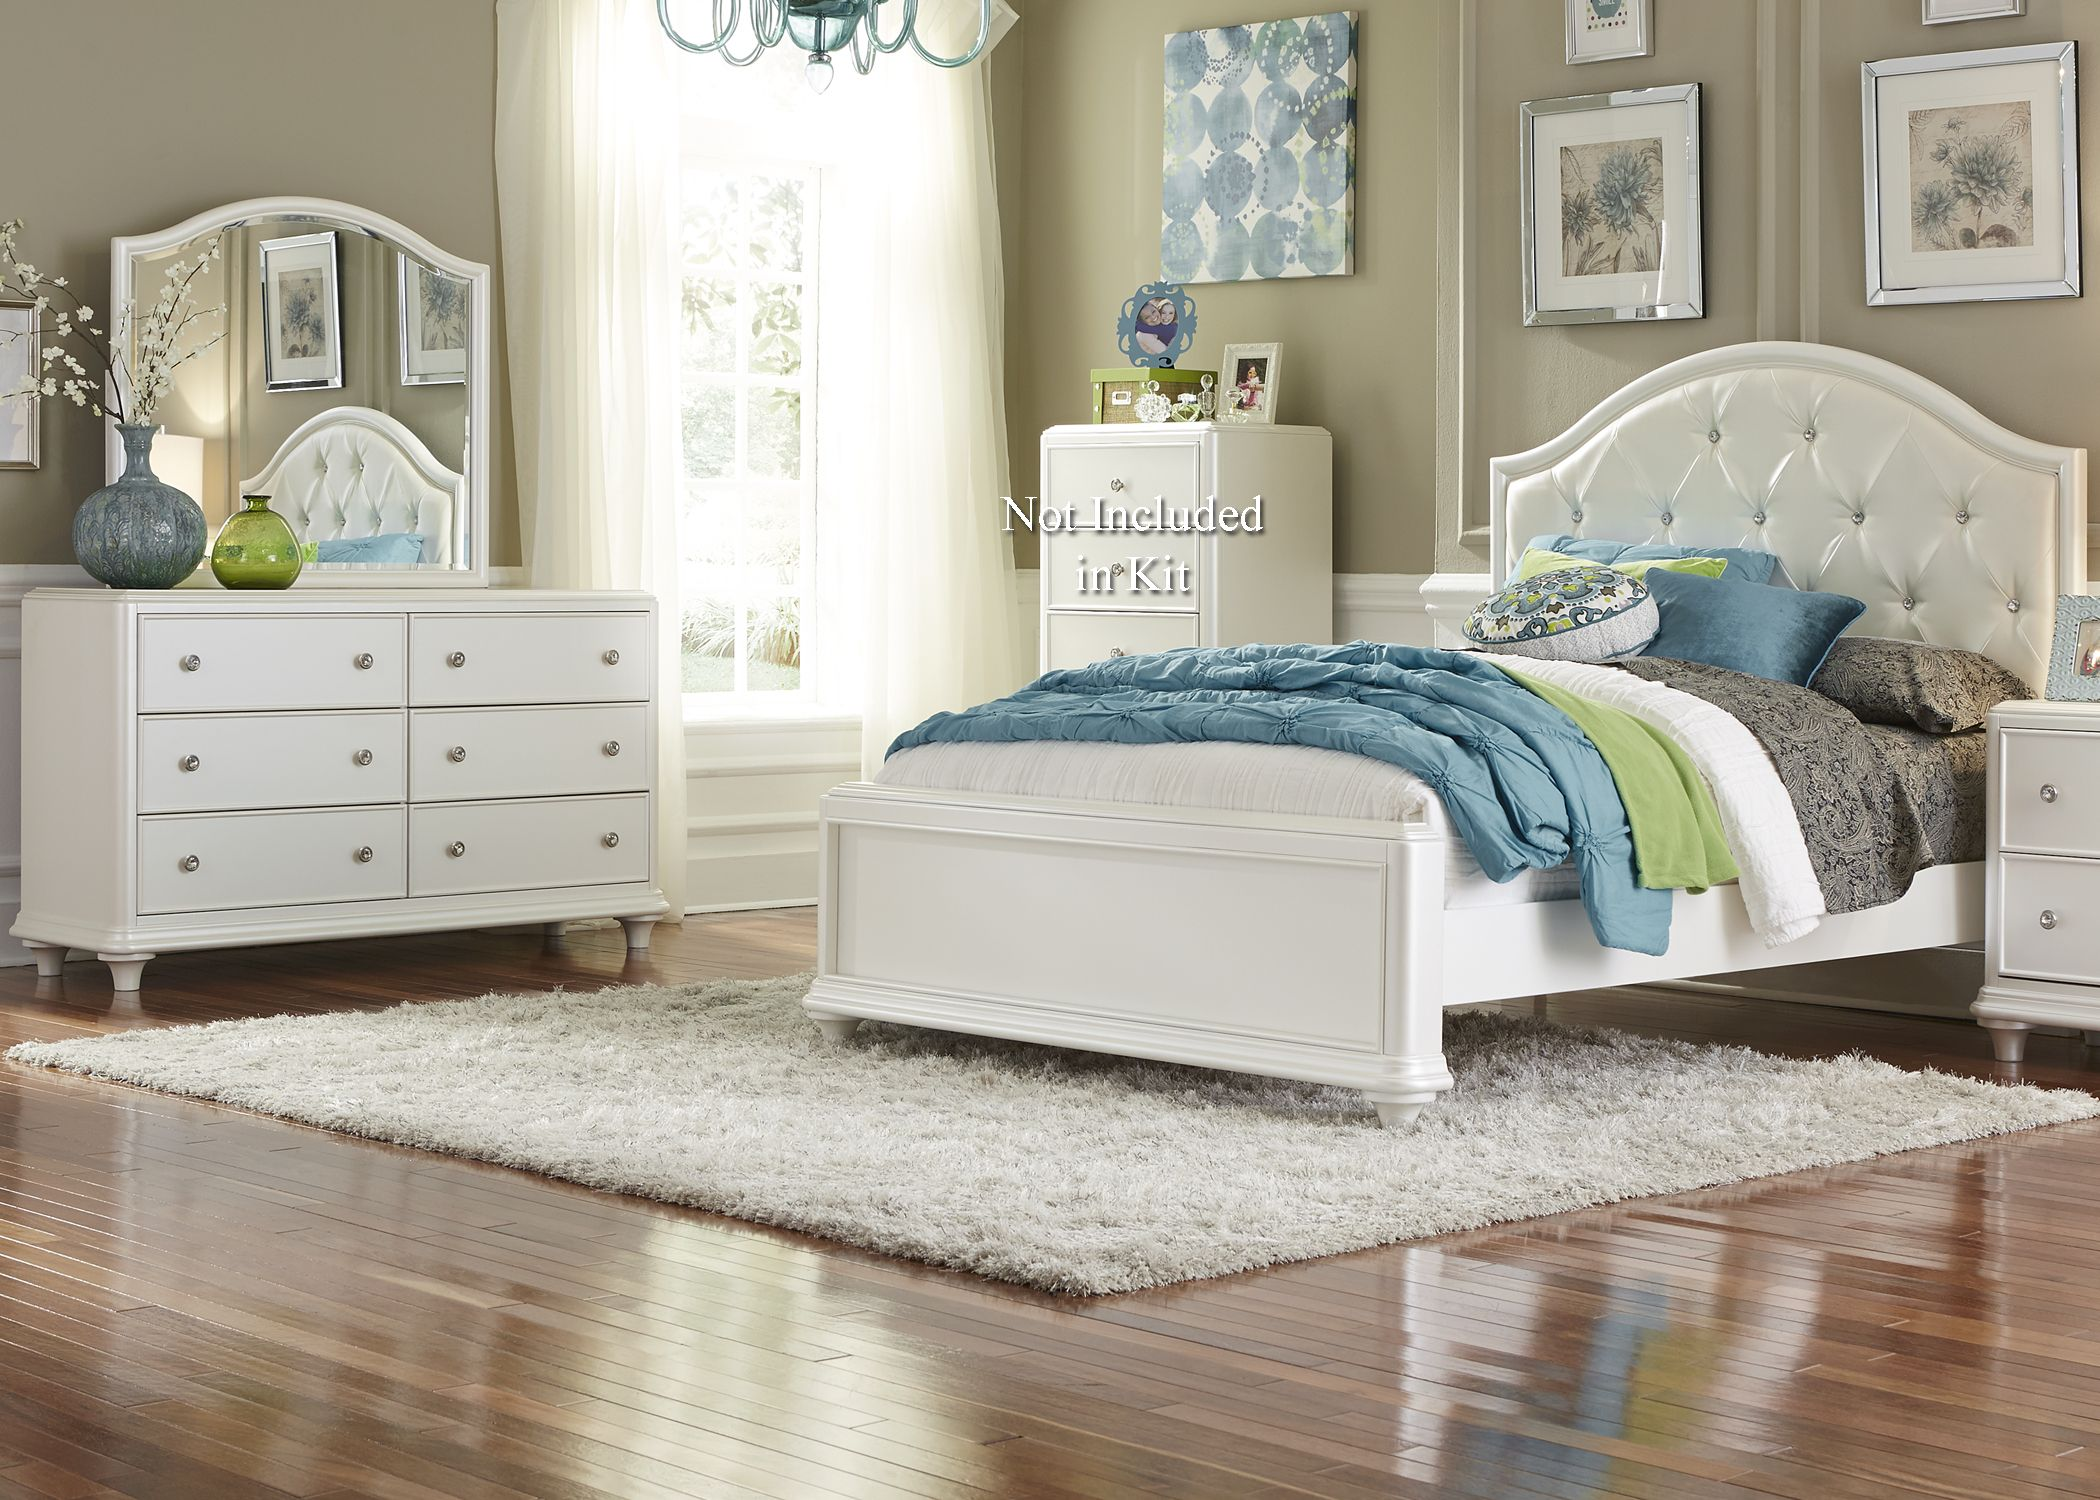 Stardust Bedroom Group By Liberty Furniture At Hudson S Furniture Liberty Furniture Bedroom Design Luxury Bedroom Furniture